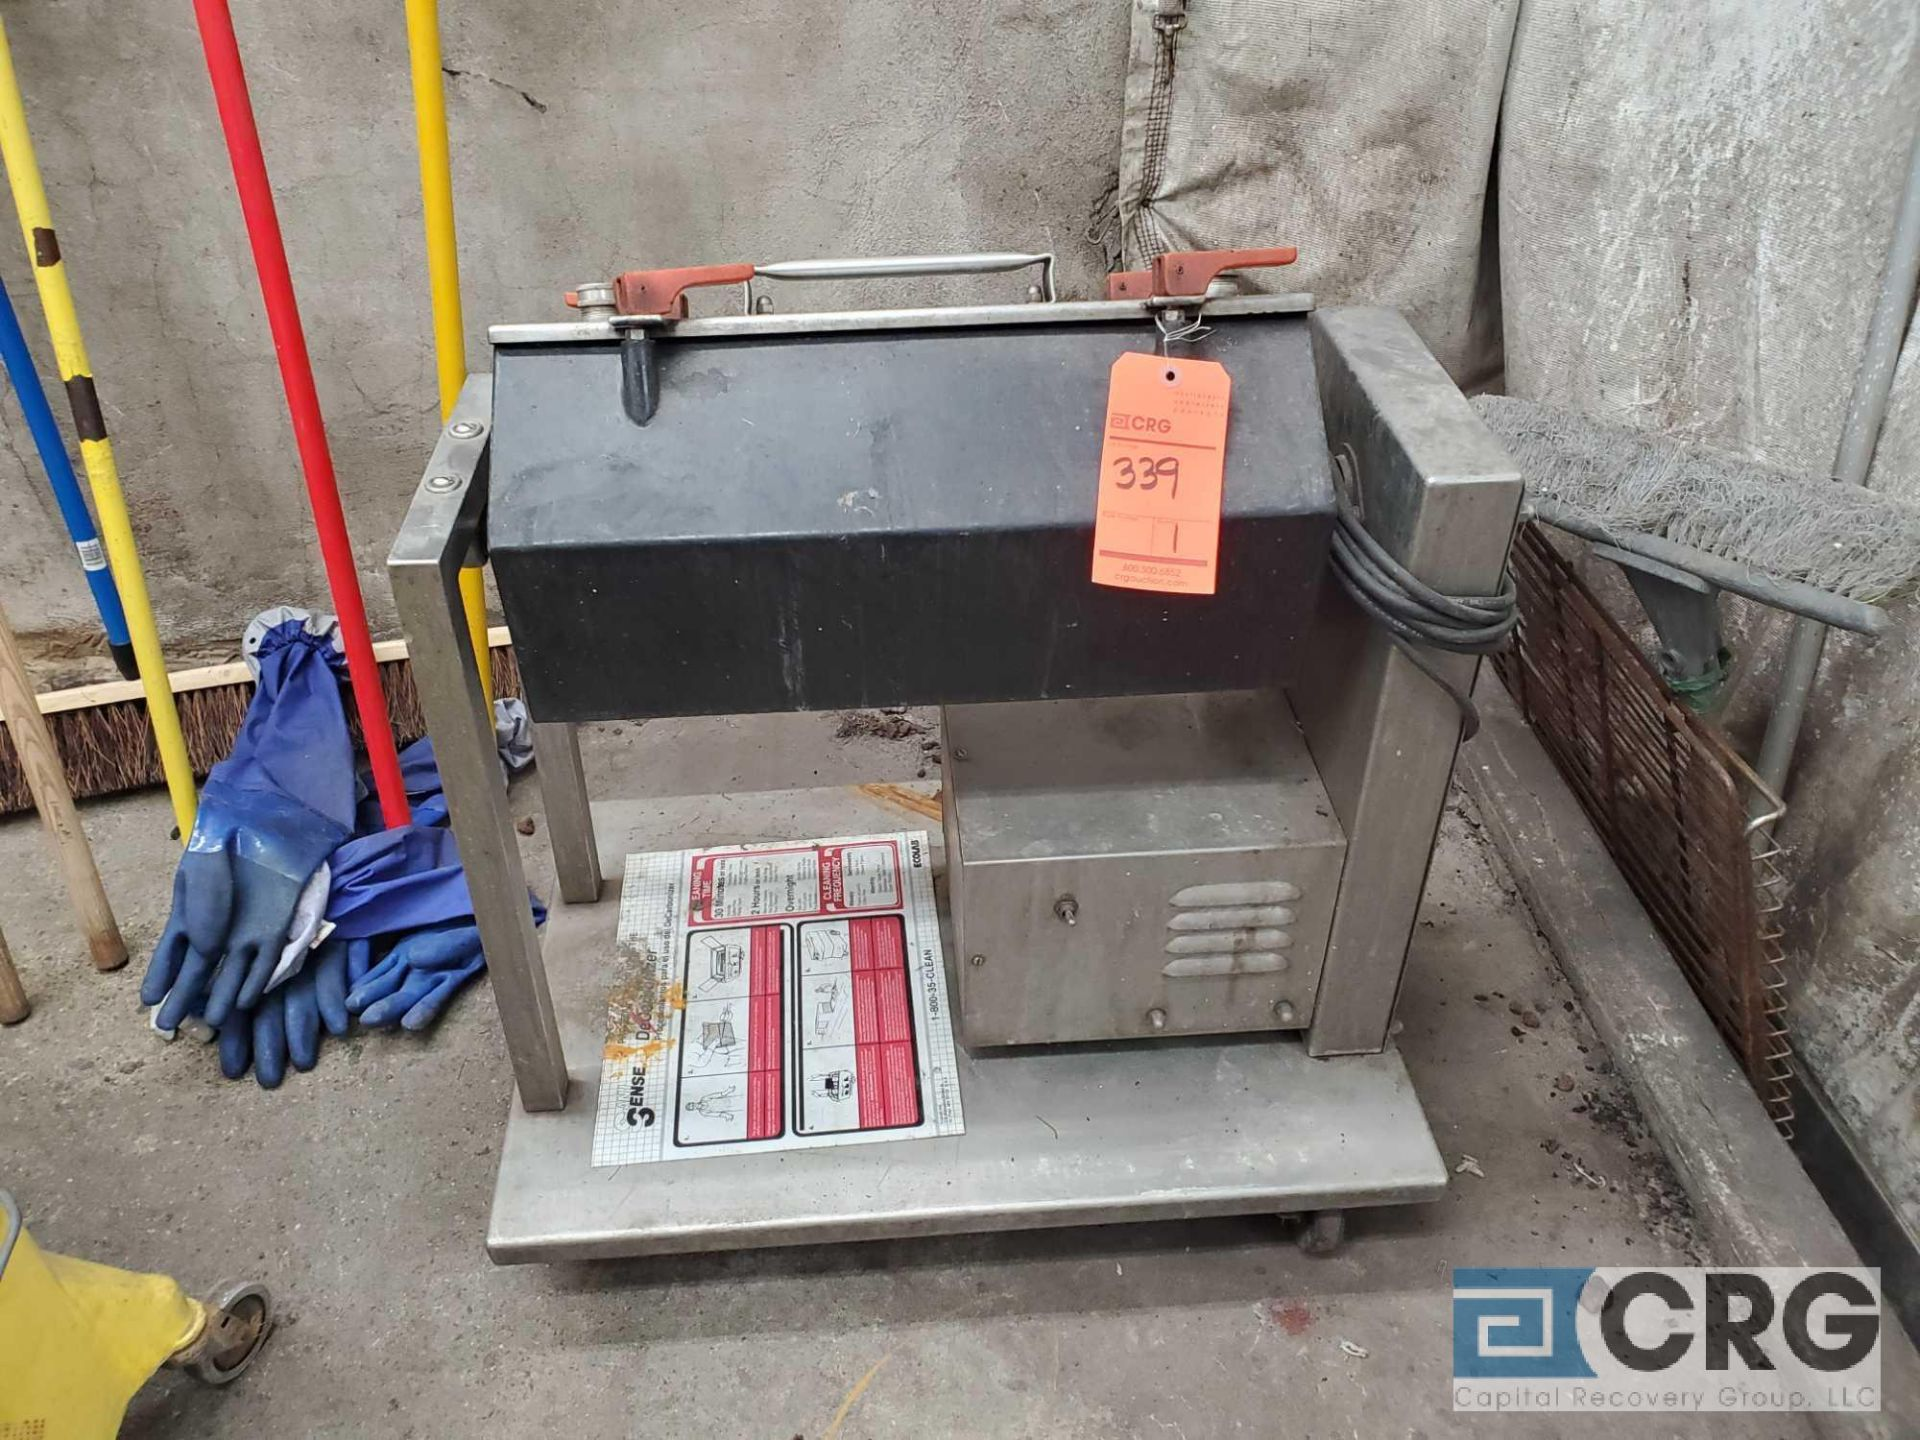 Lot 339 - Portable silver burnisher m/n E6-2, 1 phase